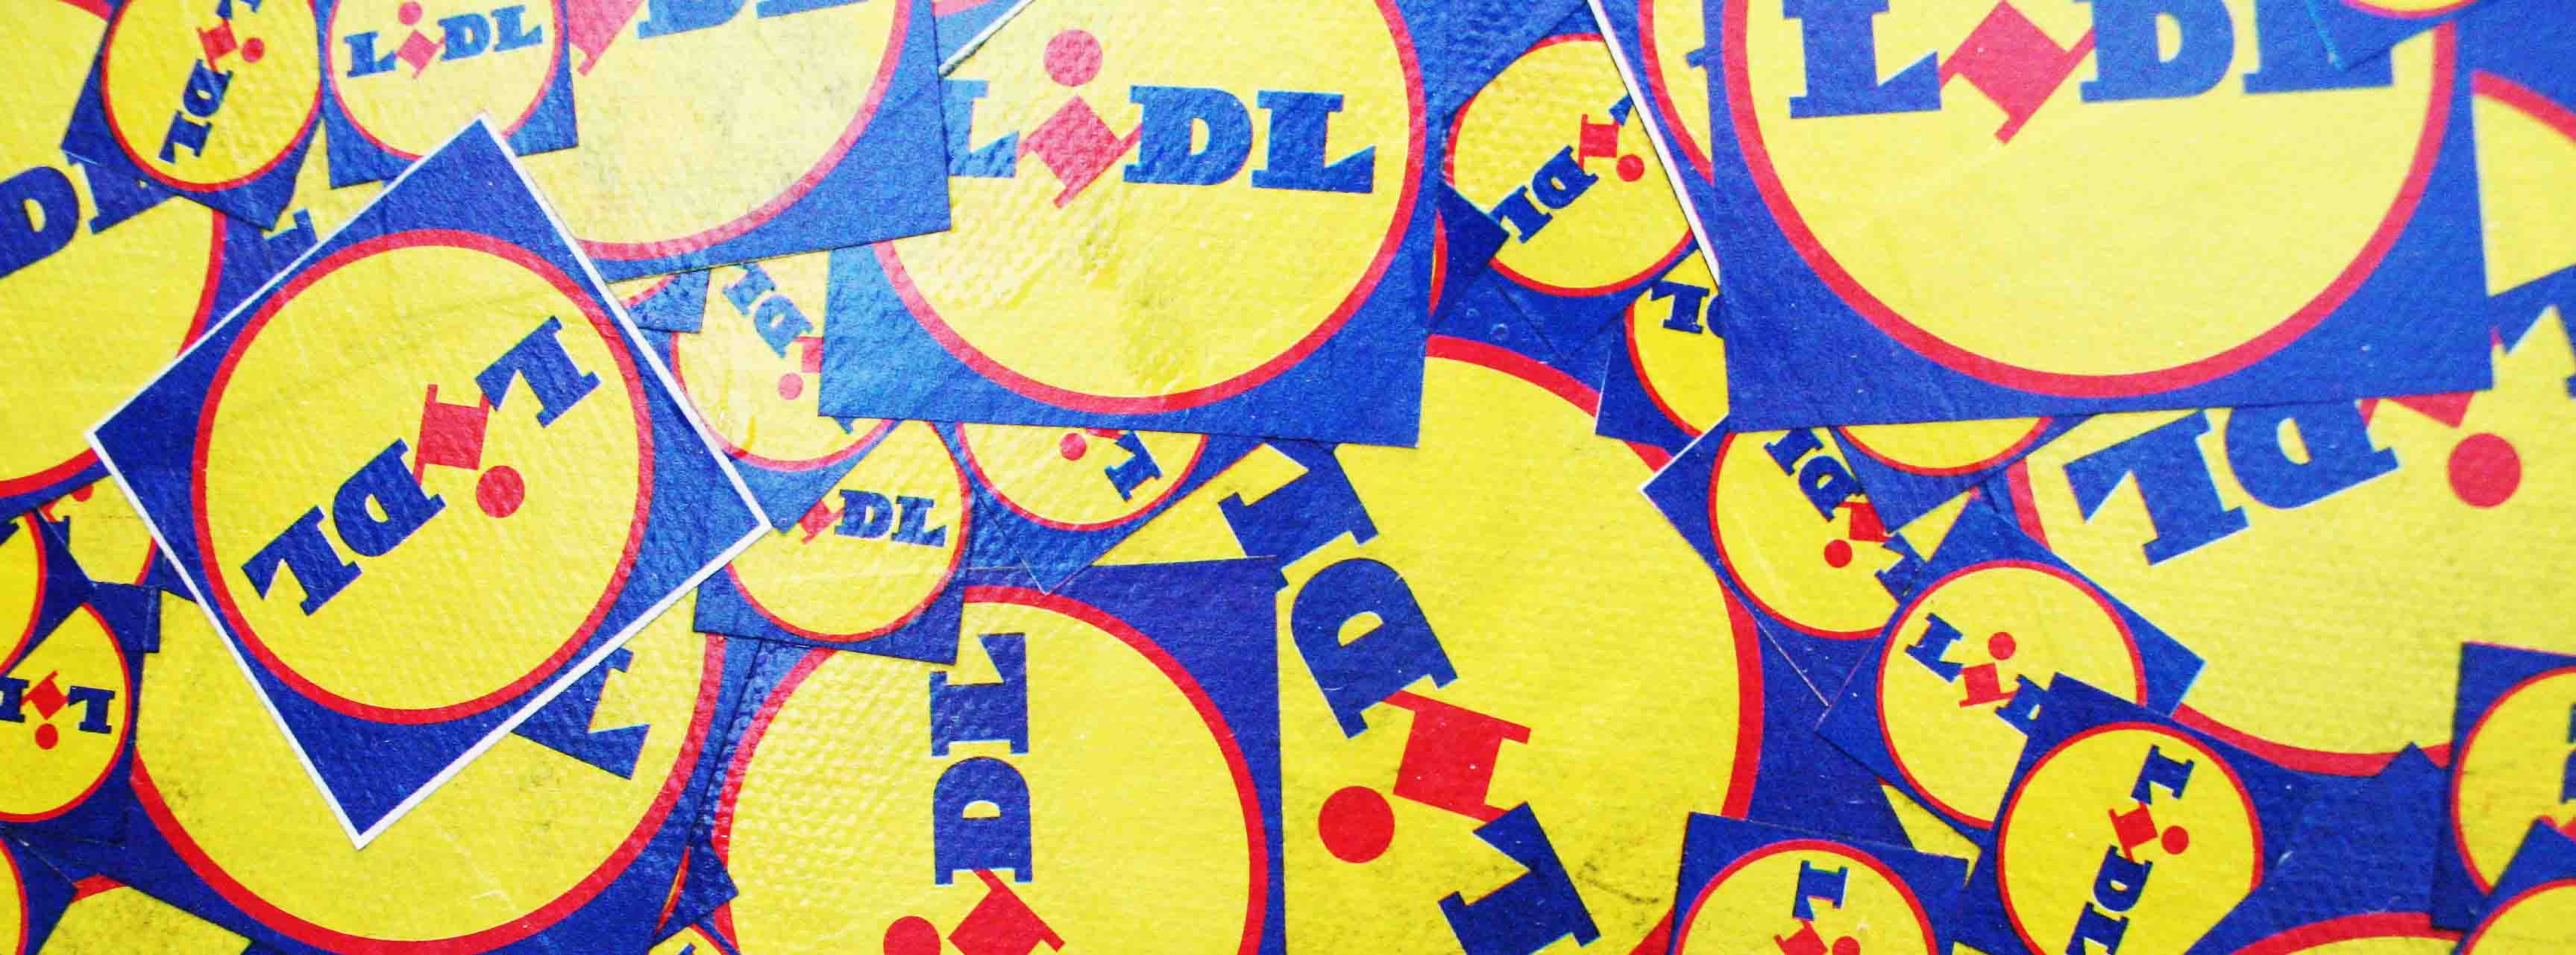 logos lidl du tableau president hollandiscount